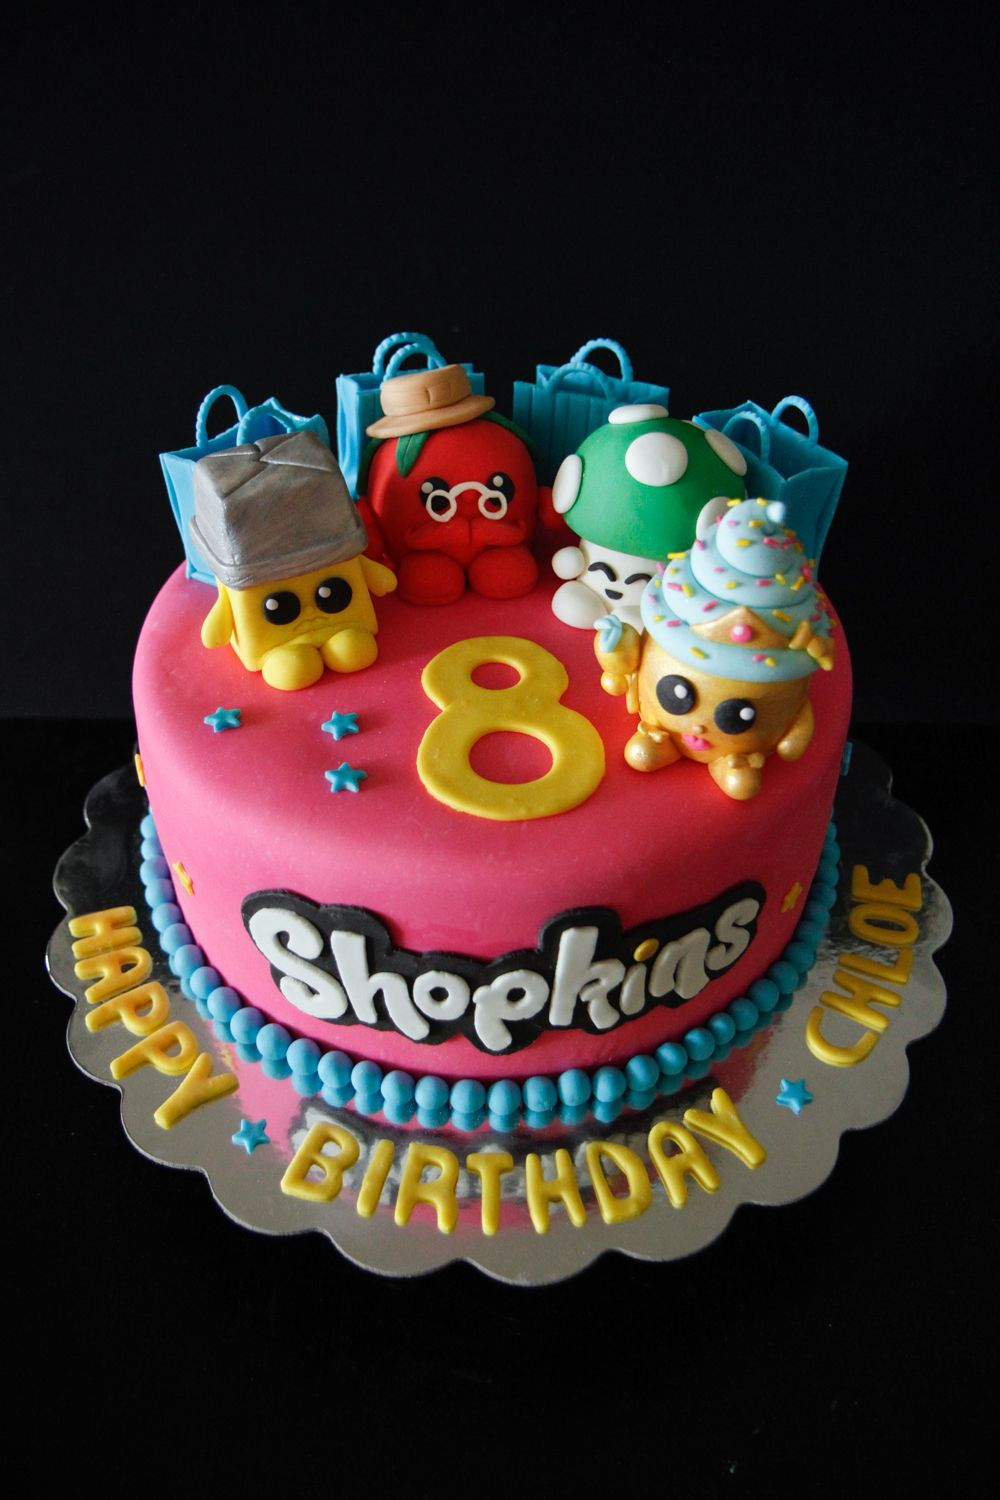 Its a Shopkins cake Buttercup Papa Tomato Miss Mushymoo and